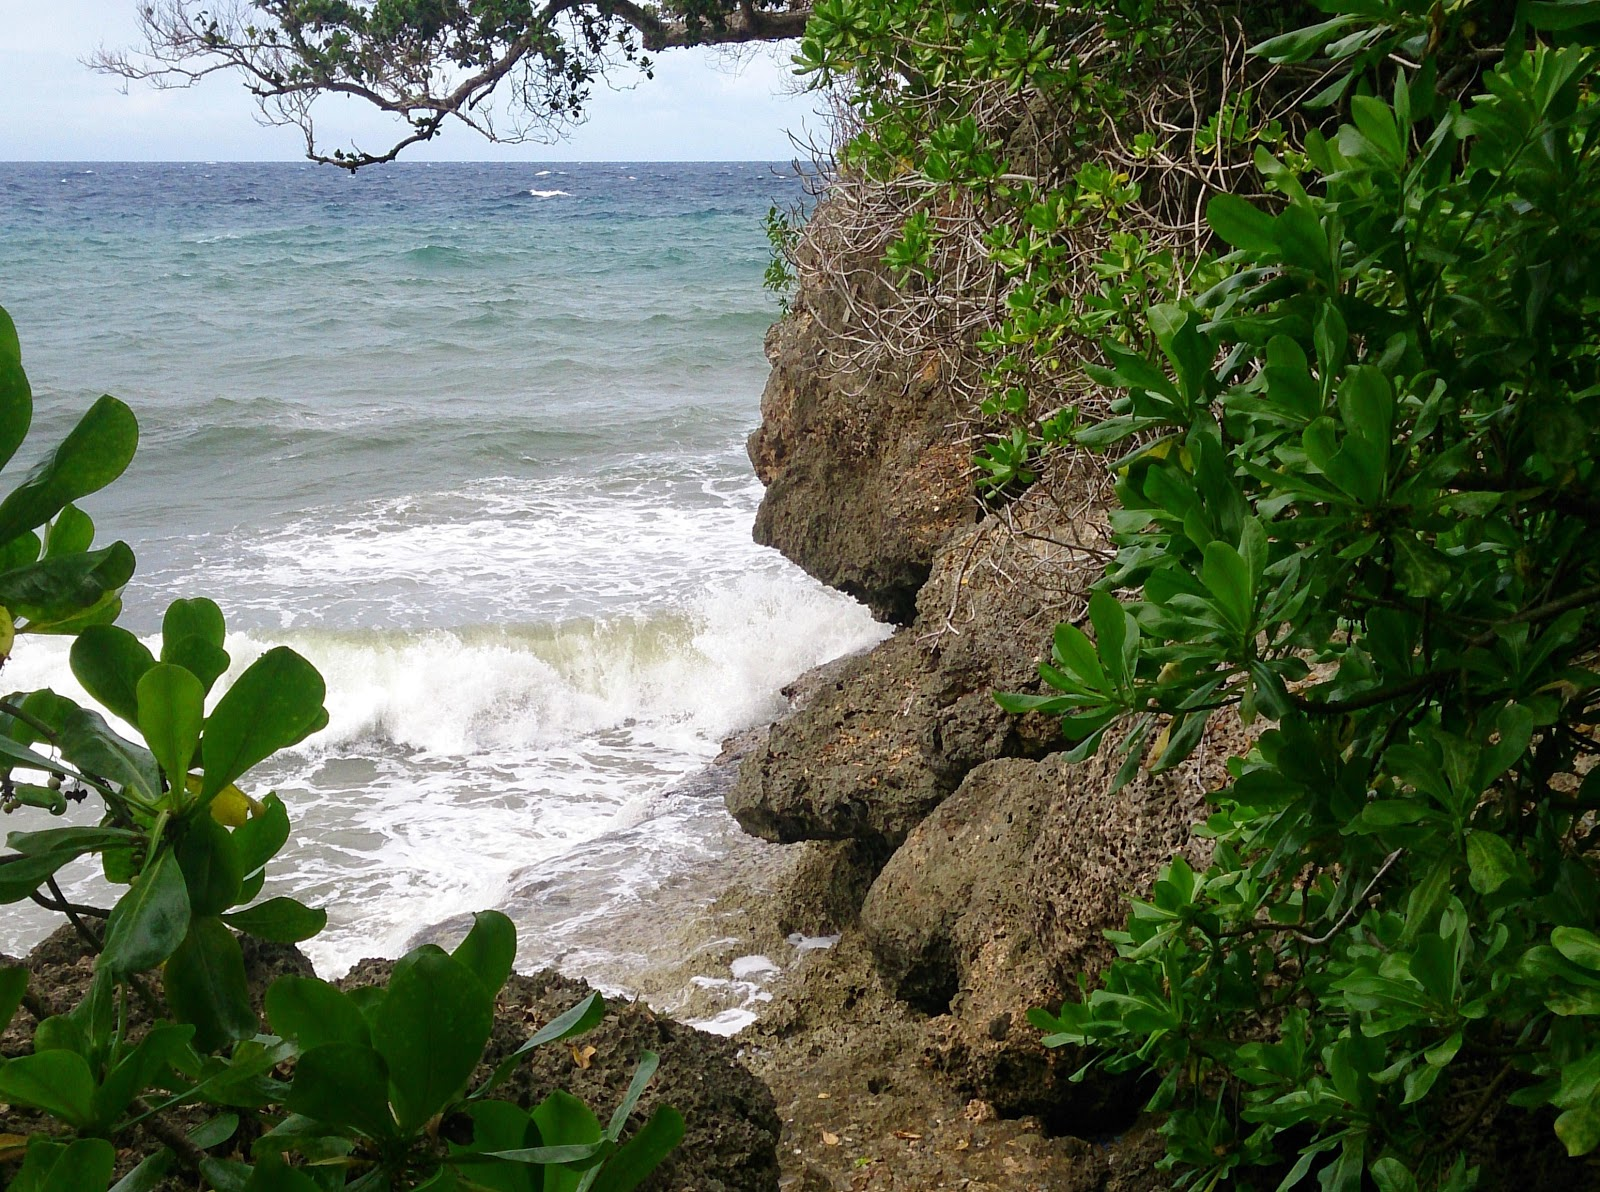 Initao-Libertad Landscape And Seascape Protected Area: A Place To Commune With Nature